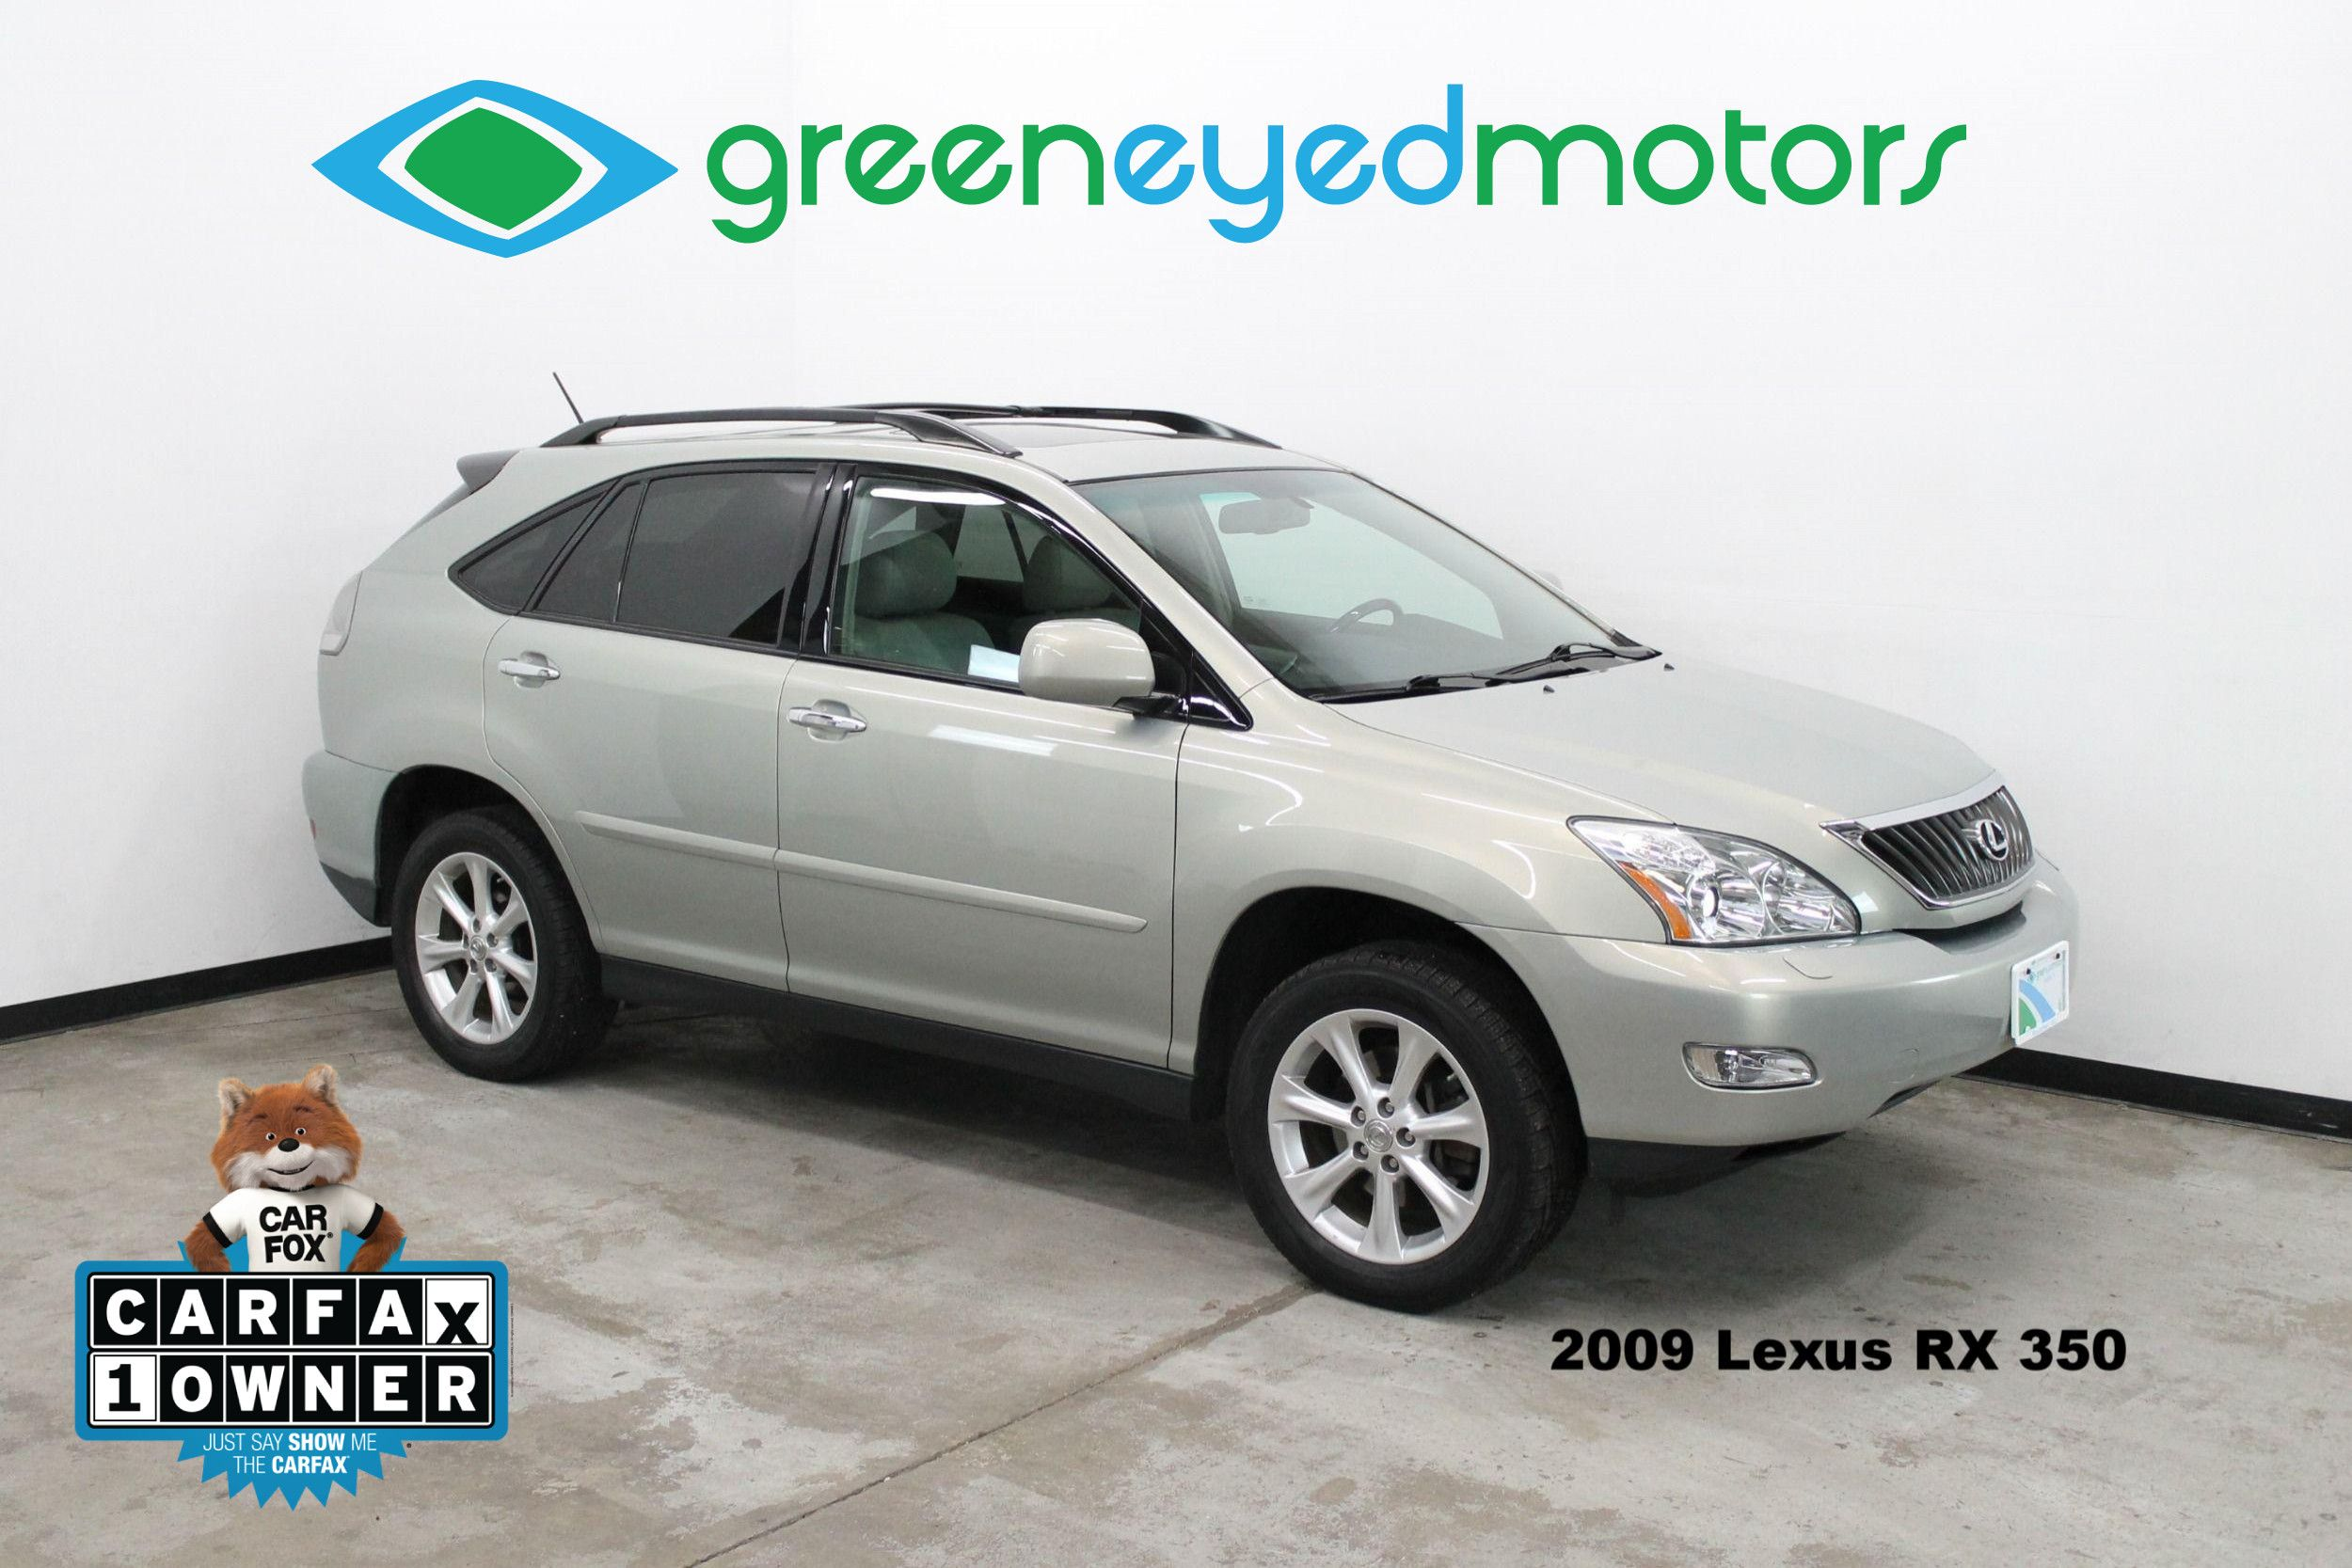 2009 lexus rx 350 green eyed motors rh greeneyedmotors com Used 2009 Lexus RX 350 Recalls Used 2009 Lexus RX 350 Recalls